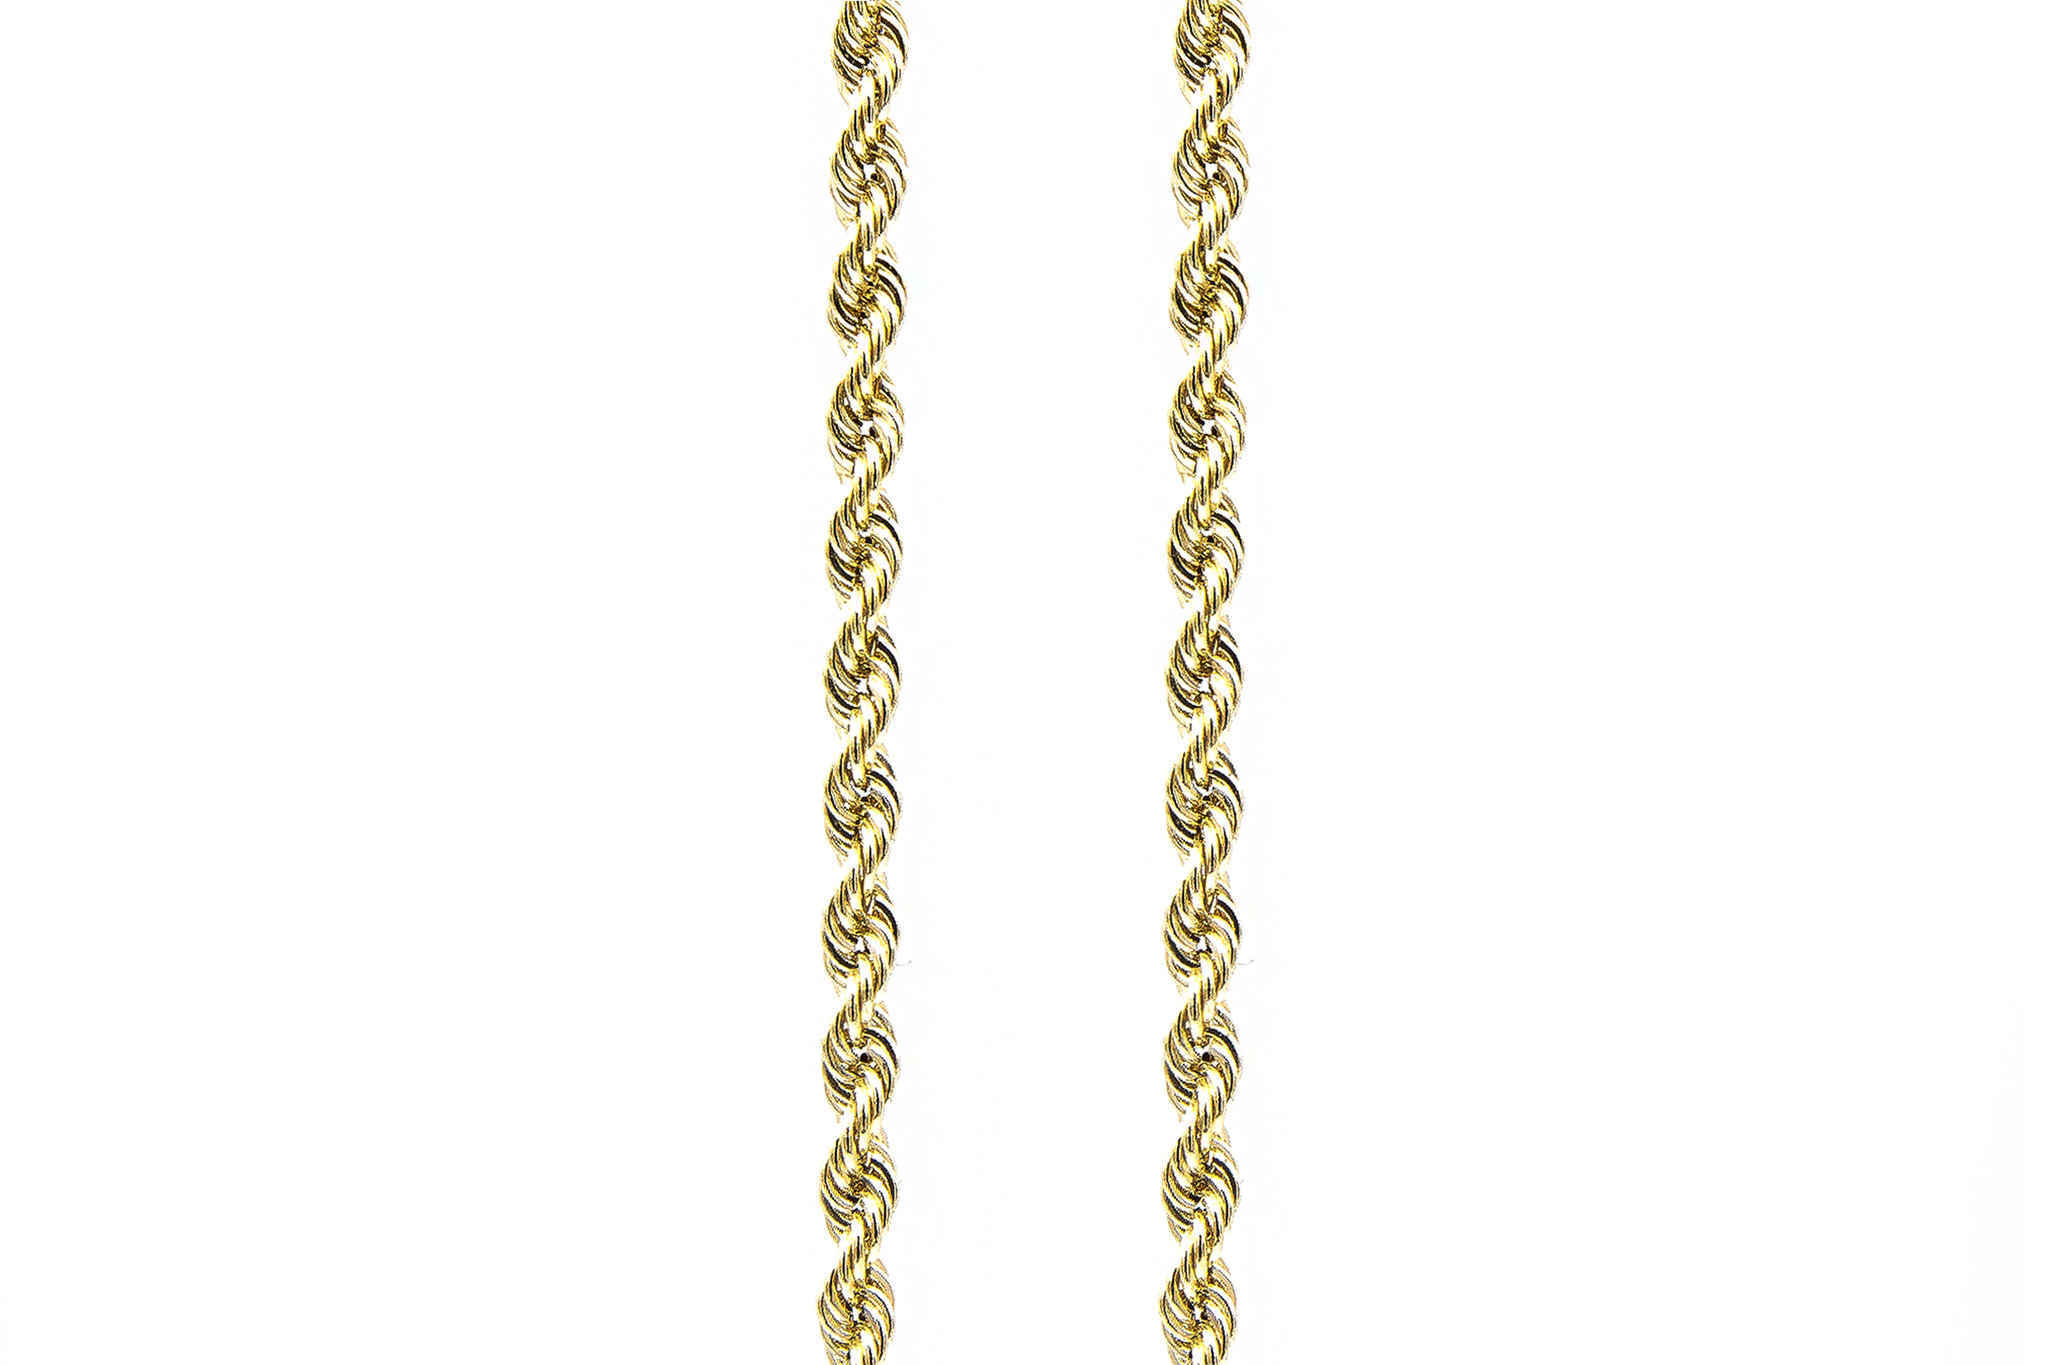 Rope Chain 14k-5 mm-1